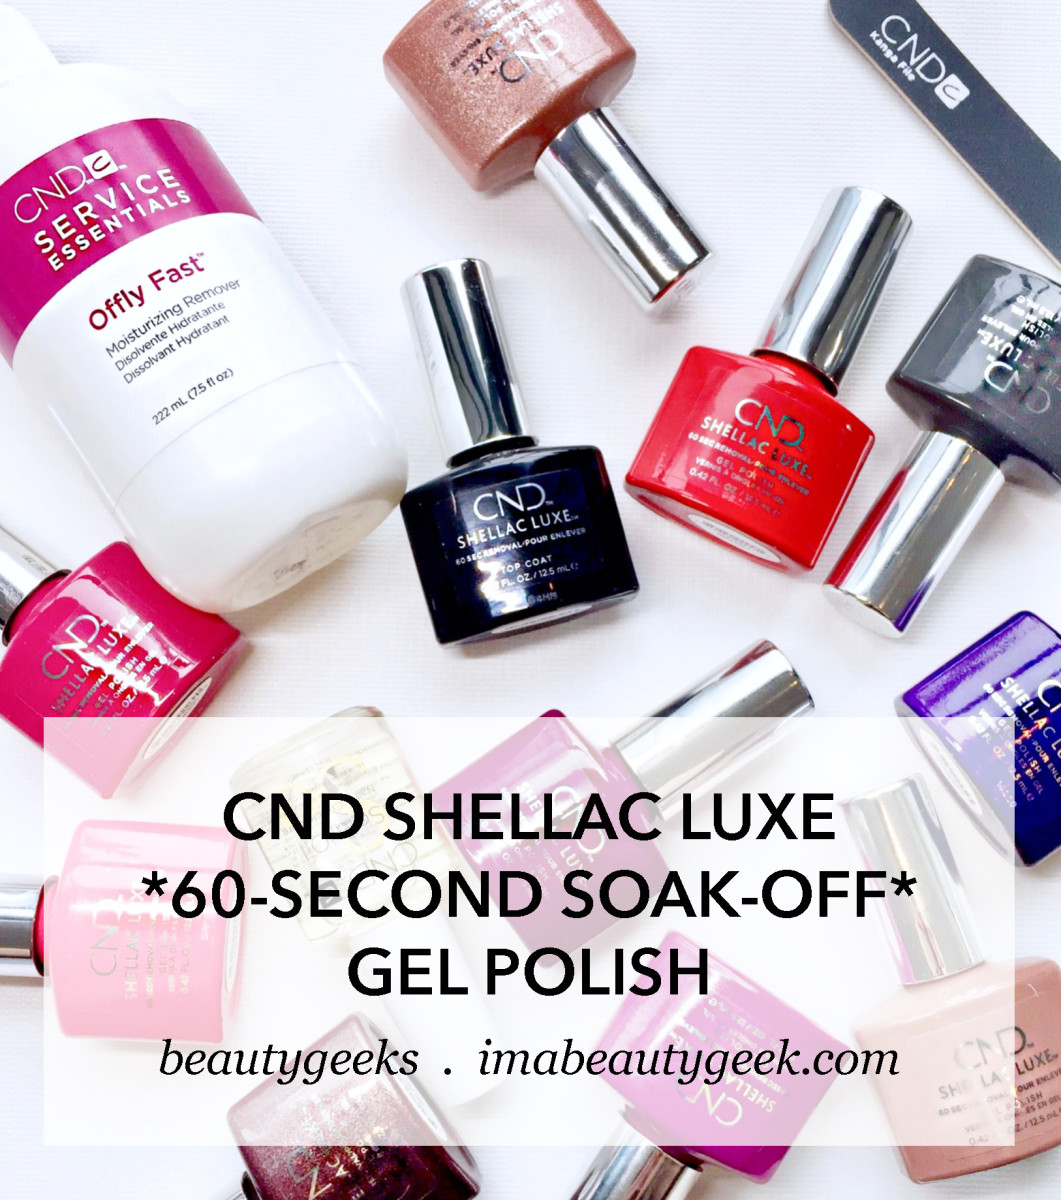 CND Shellac Luxe 60-second soak-off gel polish